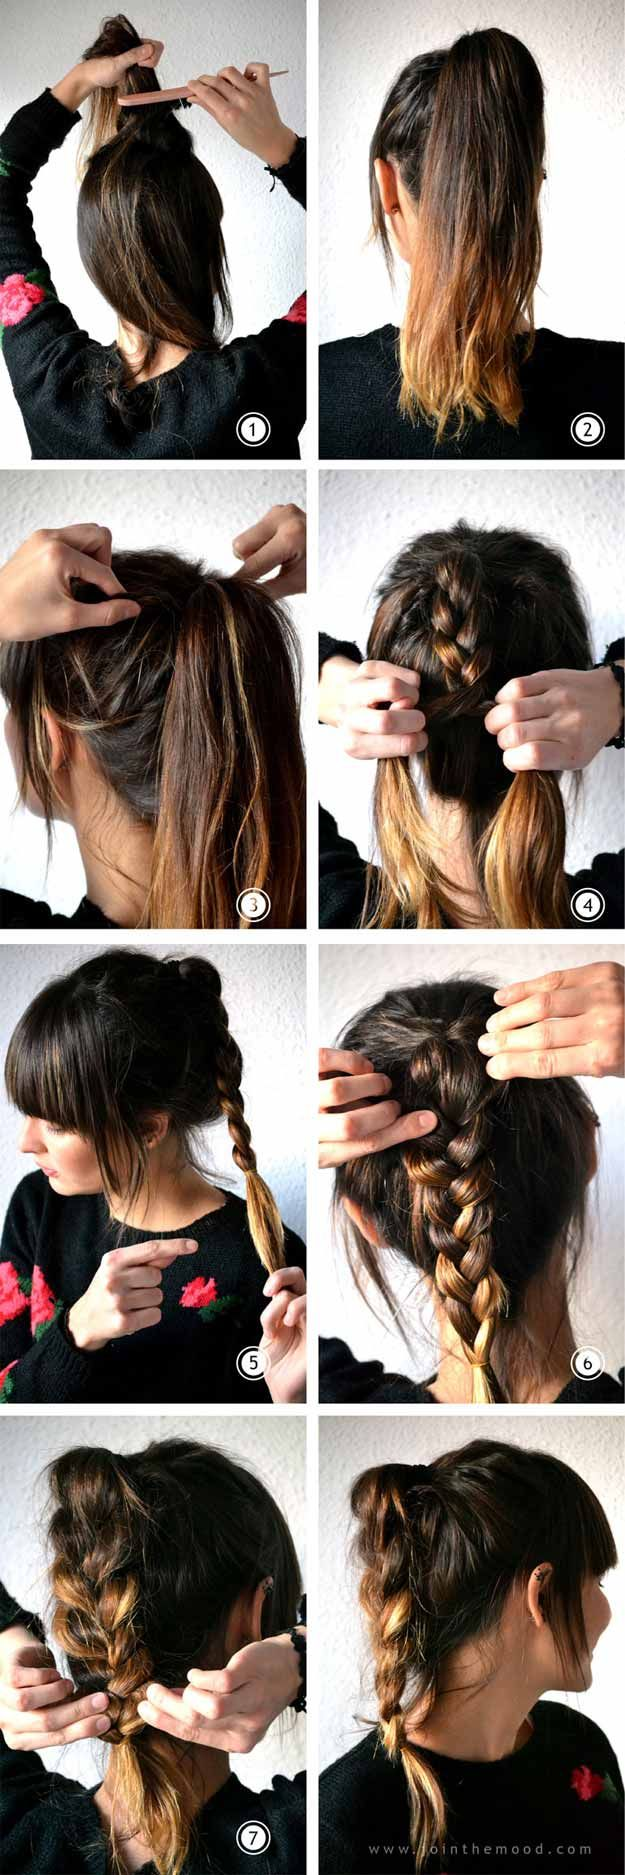 Pin On 33 Best Hairstyles For Your 20s